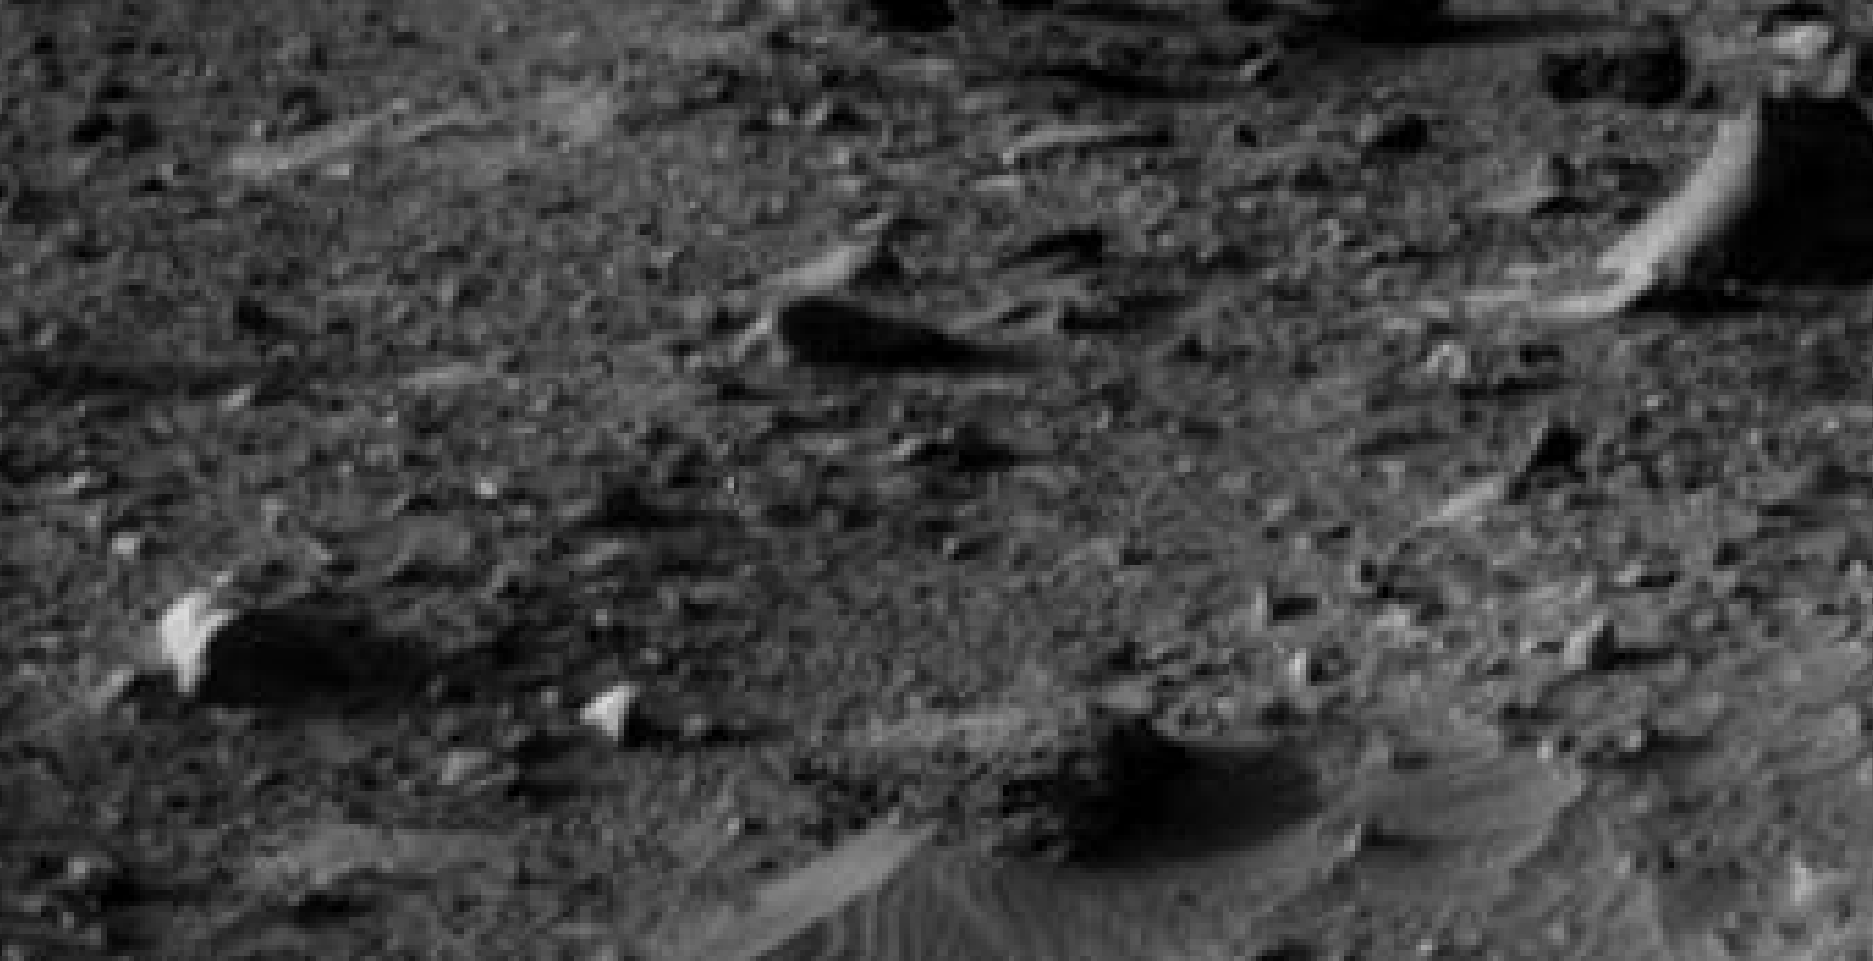 mars sol 1405 anomaly artifacts 18 was life on mars